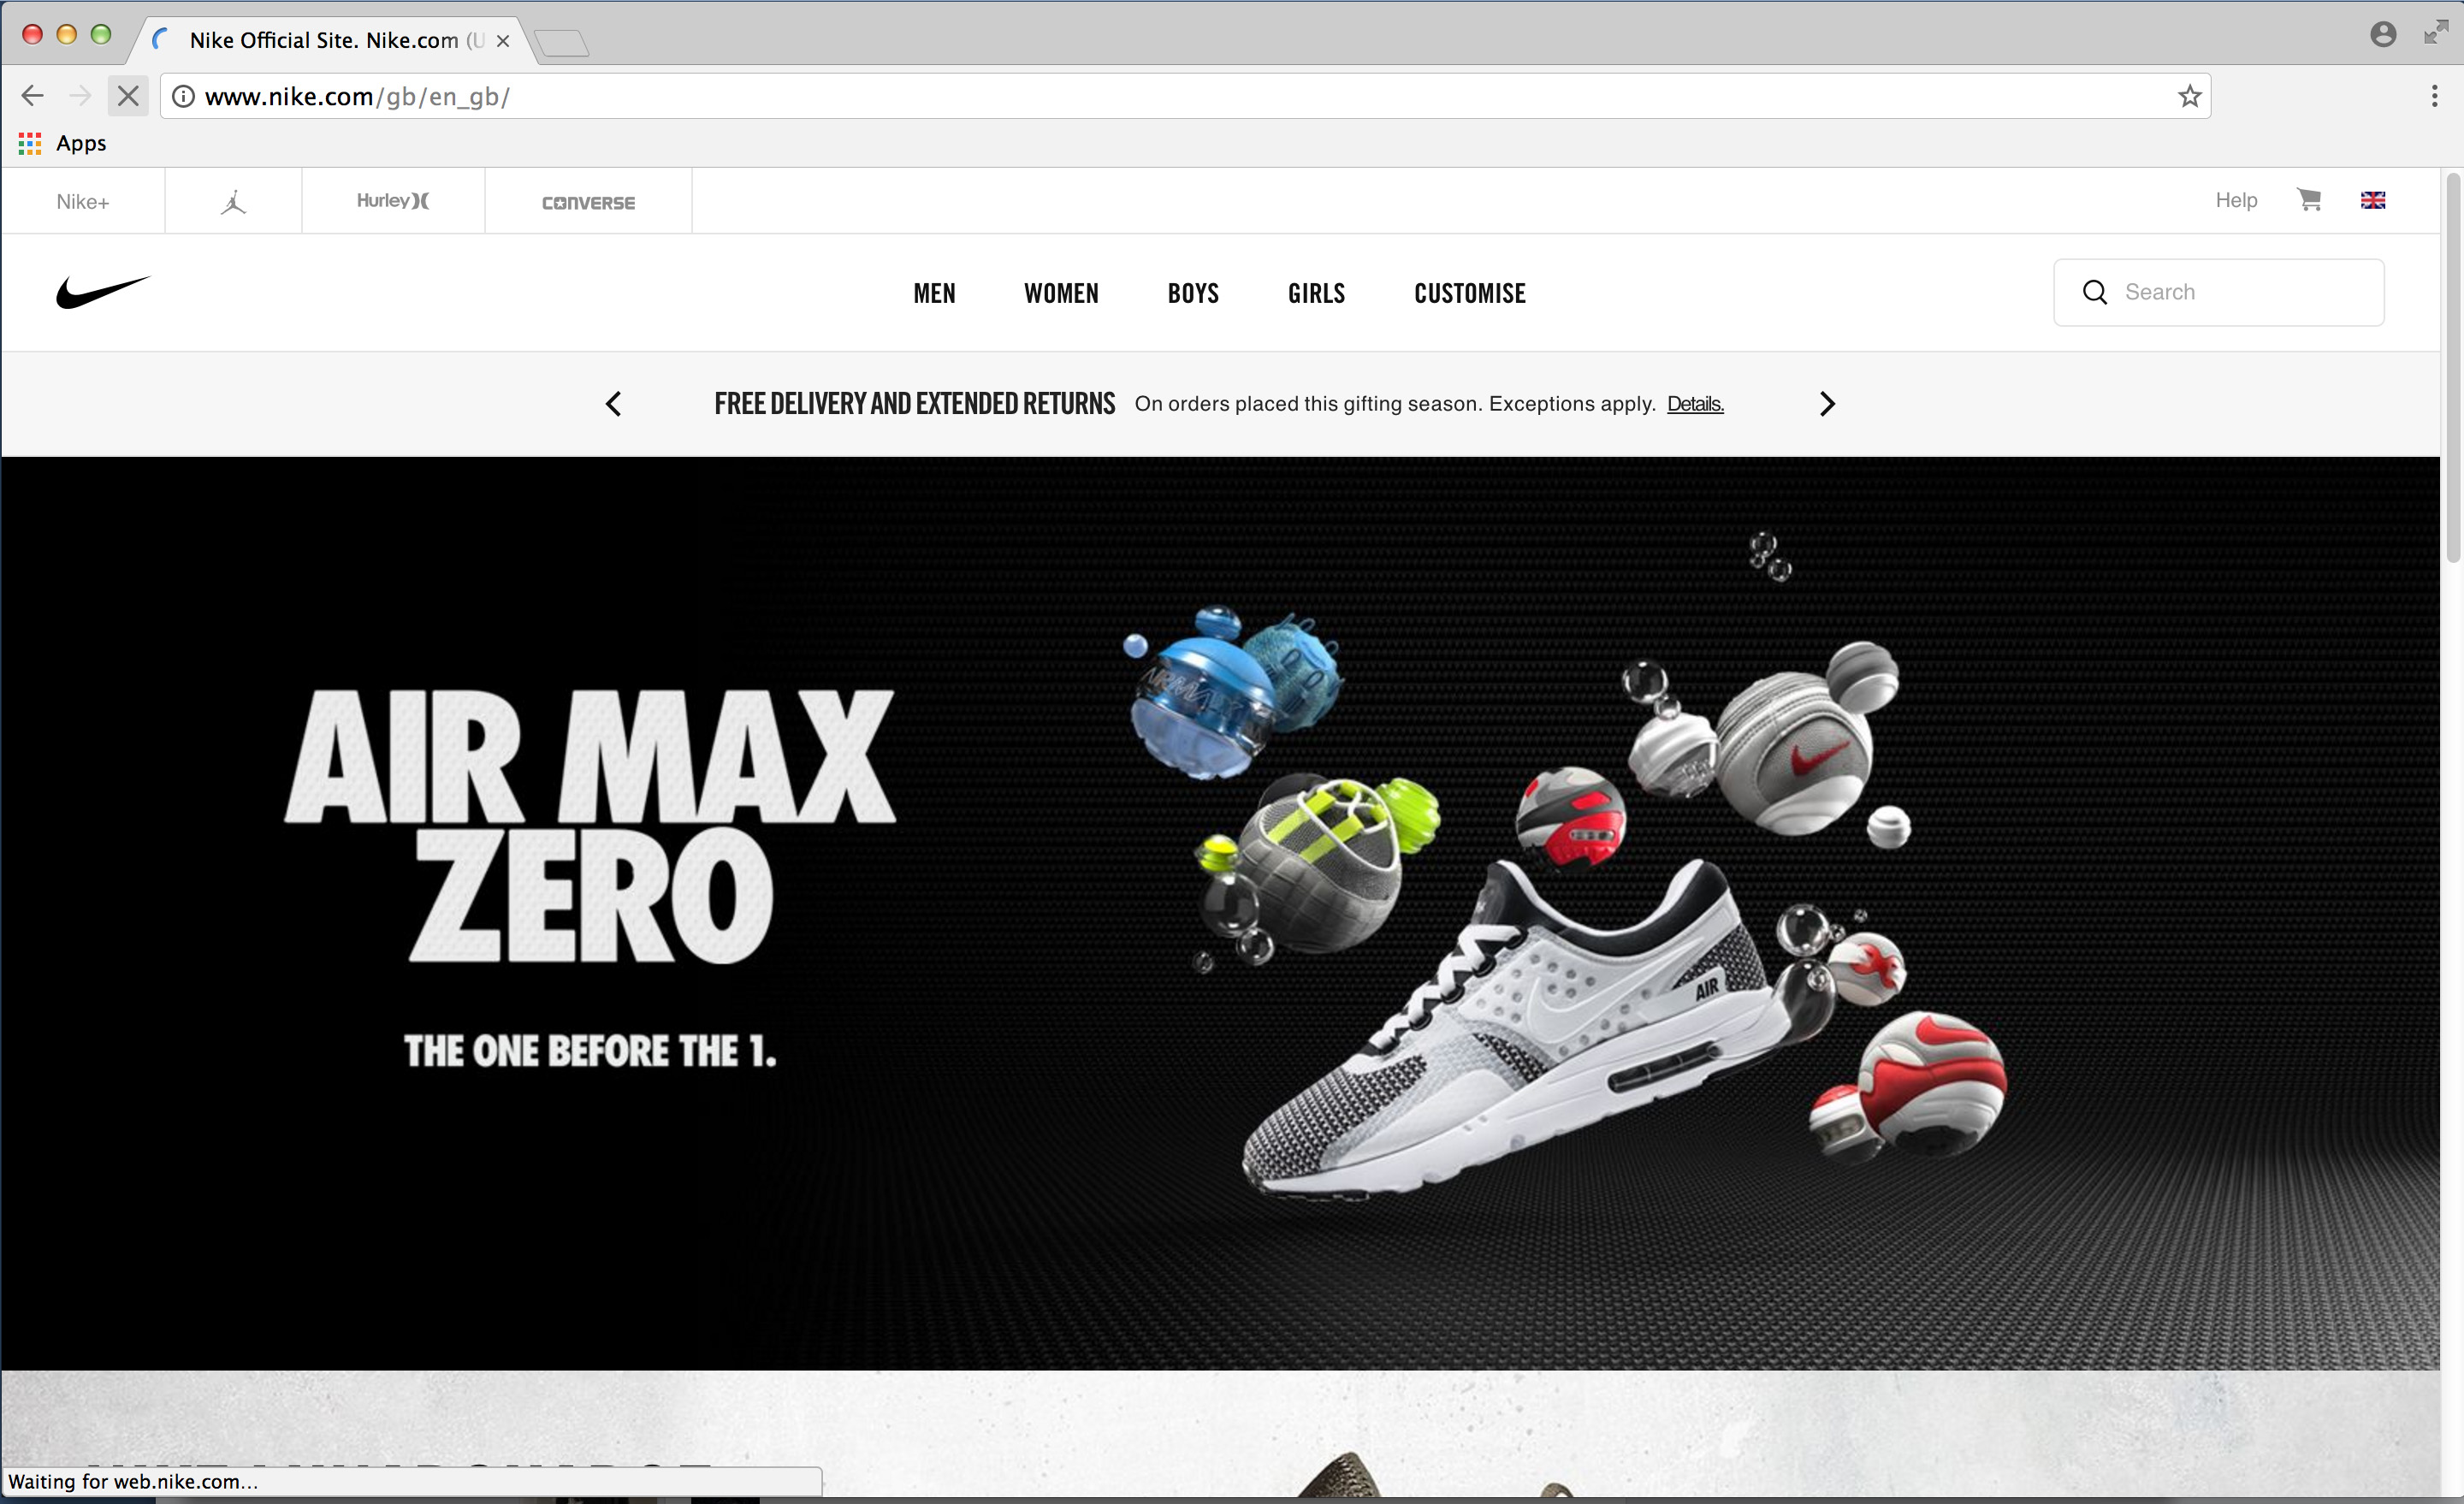 nike.com frontpage feature